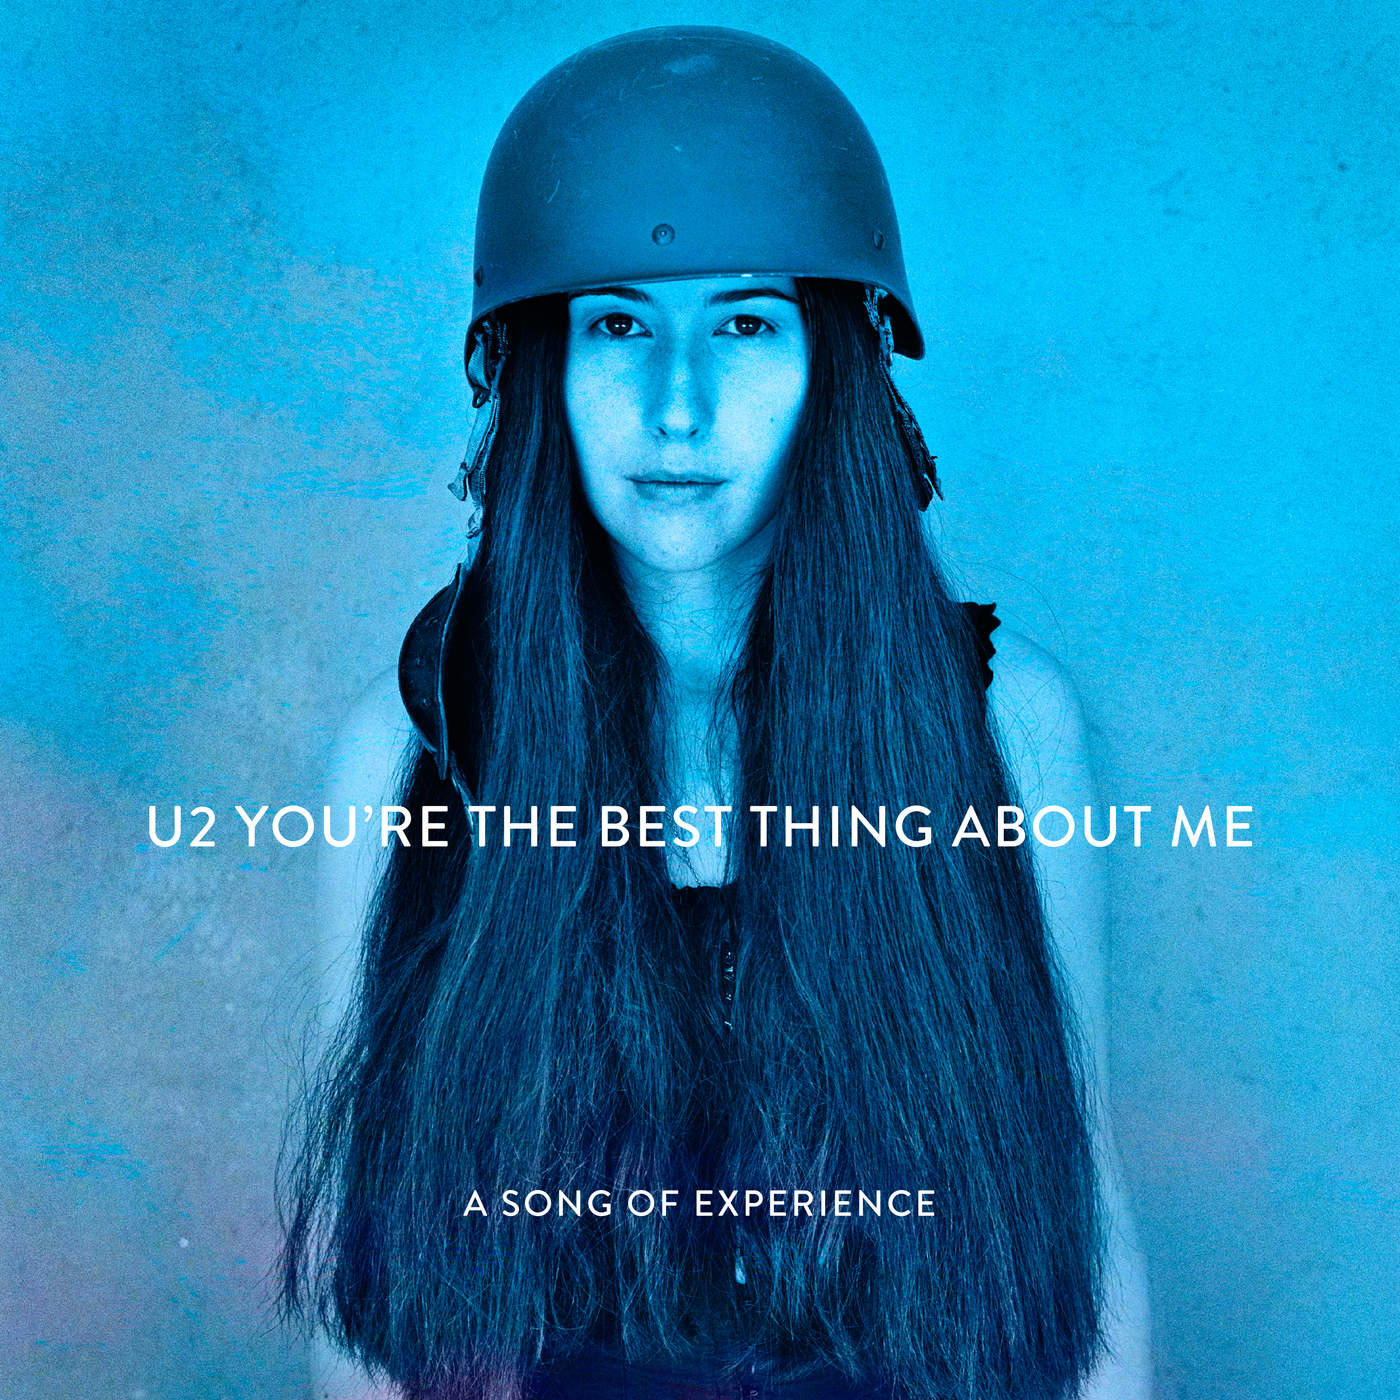 U2 - You're the Best Thing About Me - Single